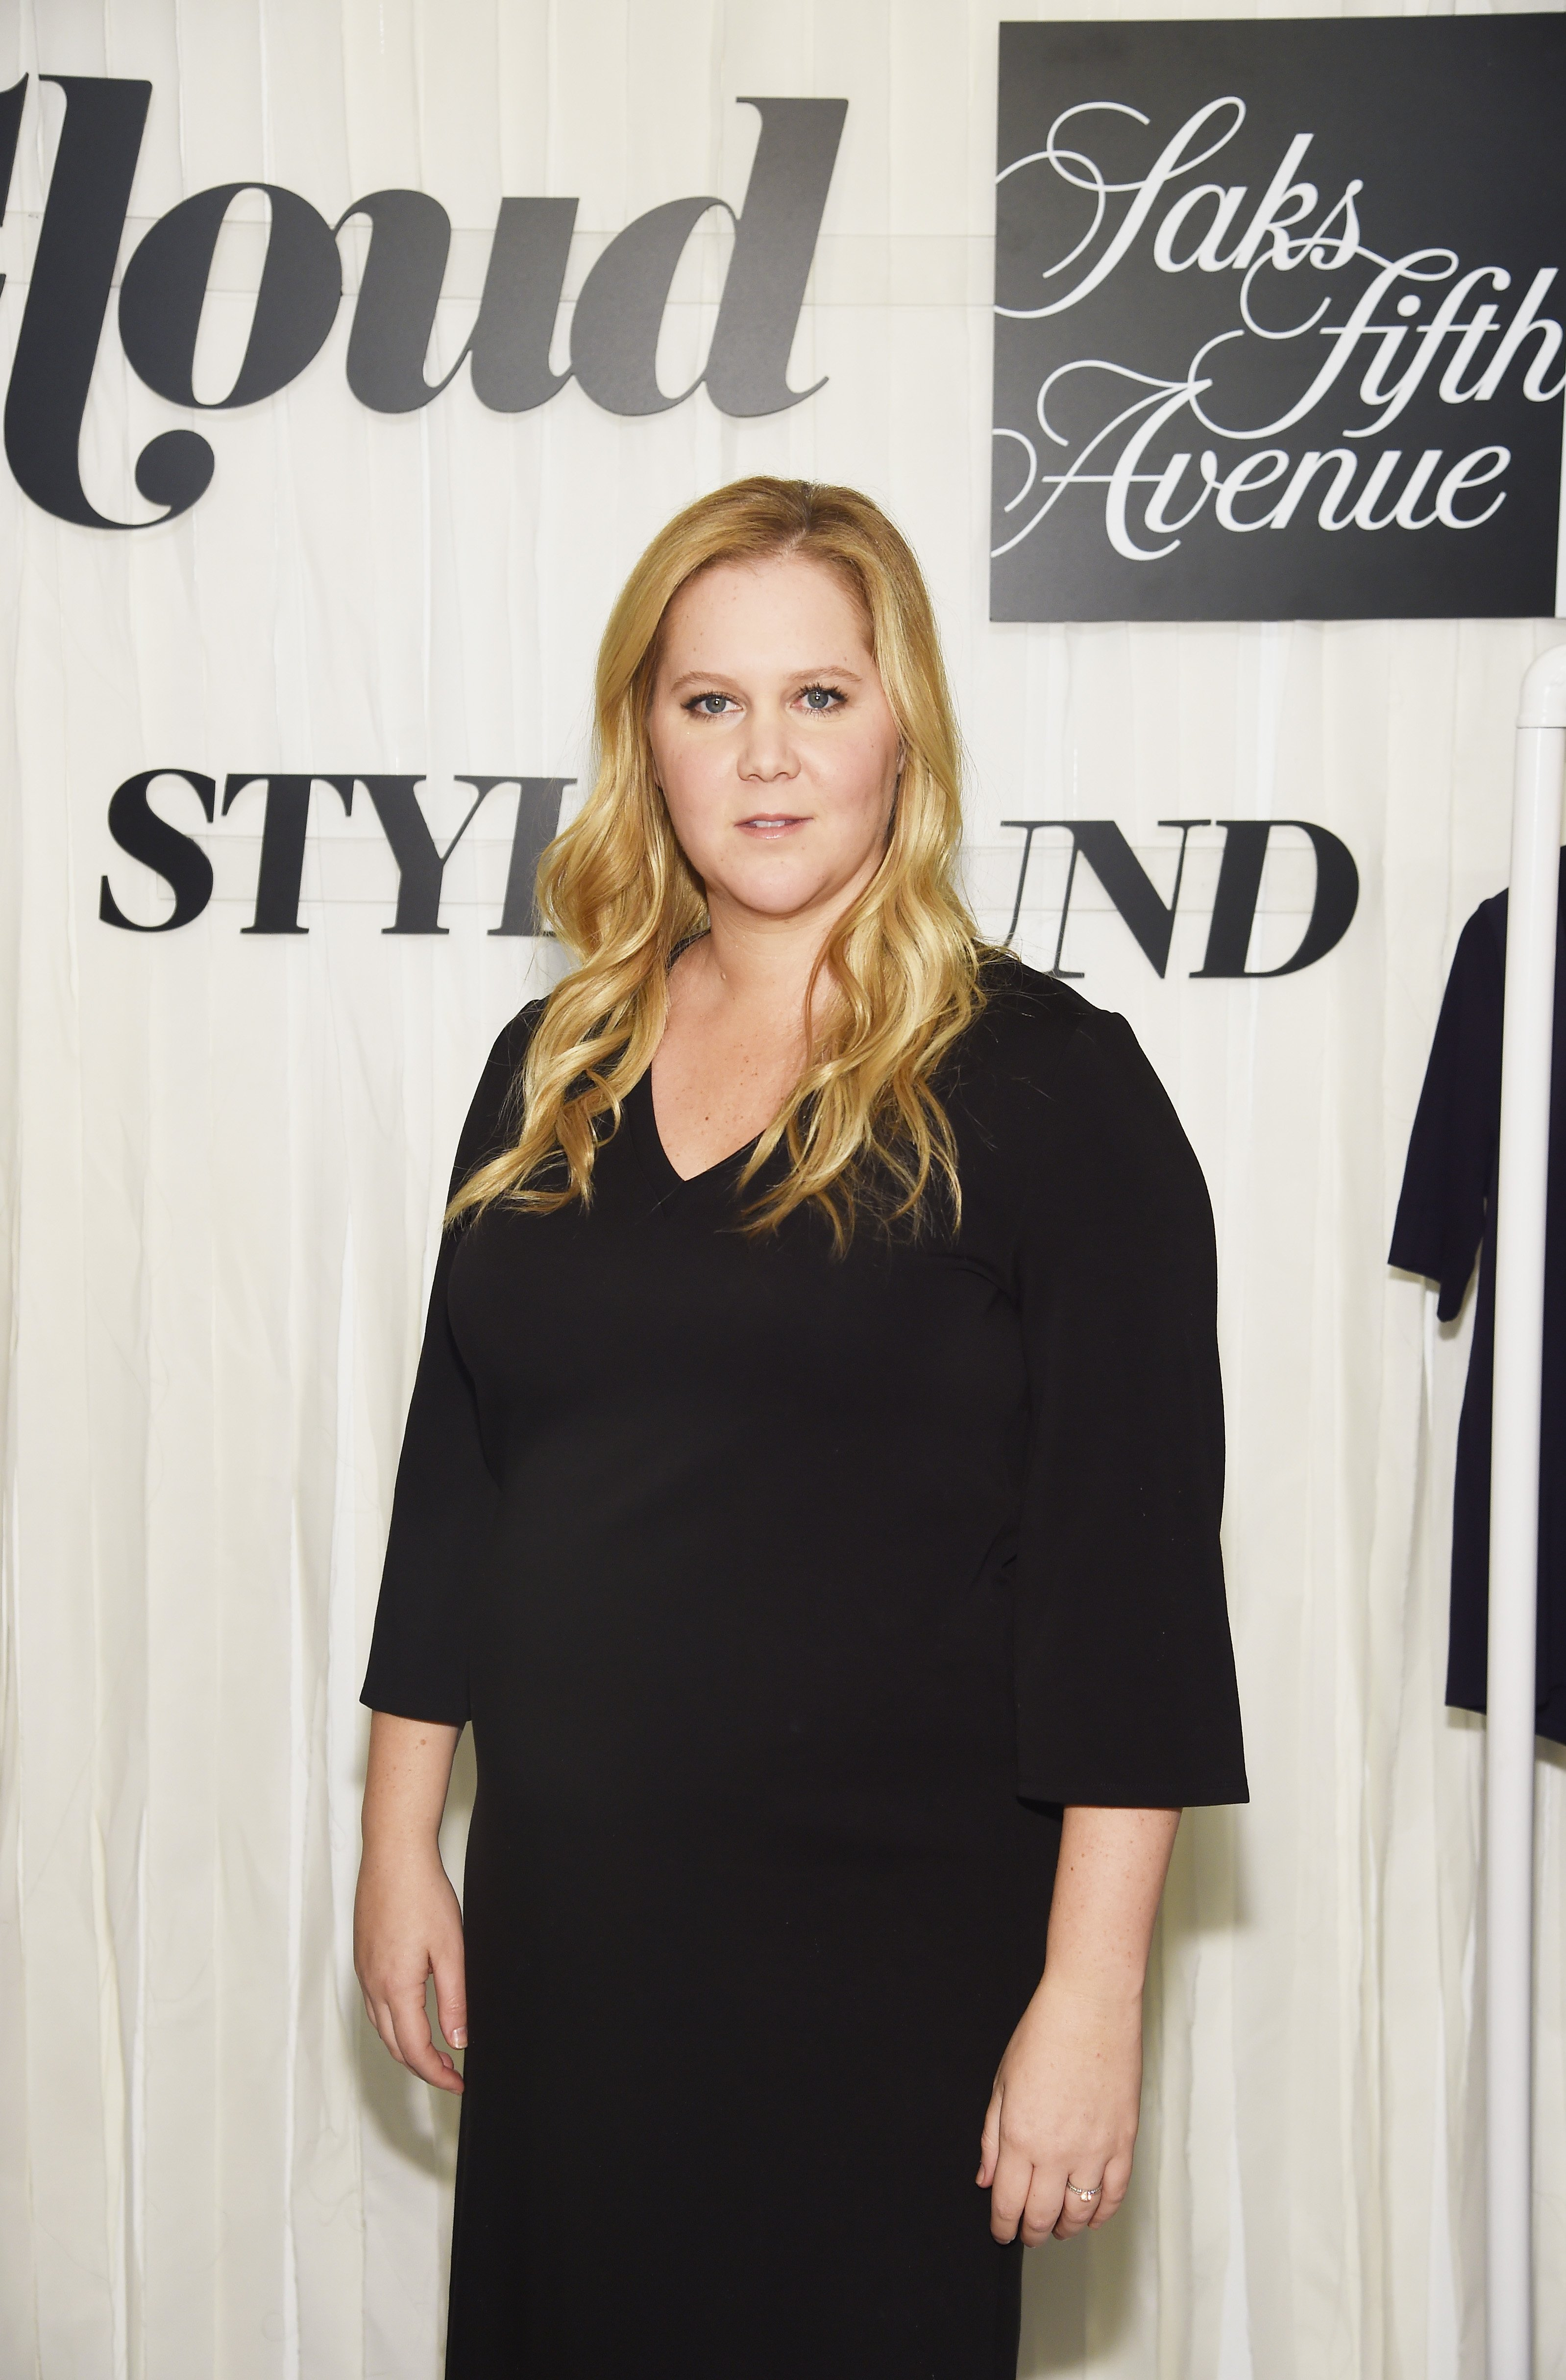 Amy Schumer attends Amy Schumer & Leesa Evans Host Le Cloud Launch Event on December 12, 2018, in New York City. | Source: Getty Images.